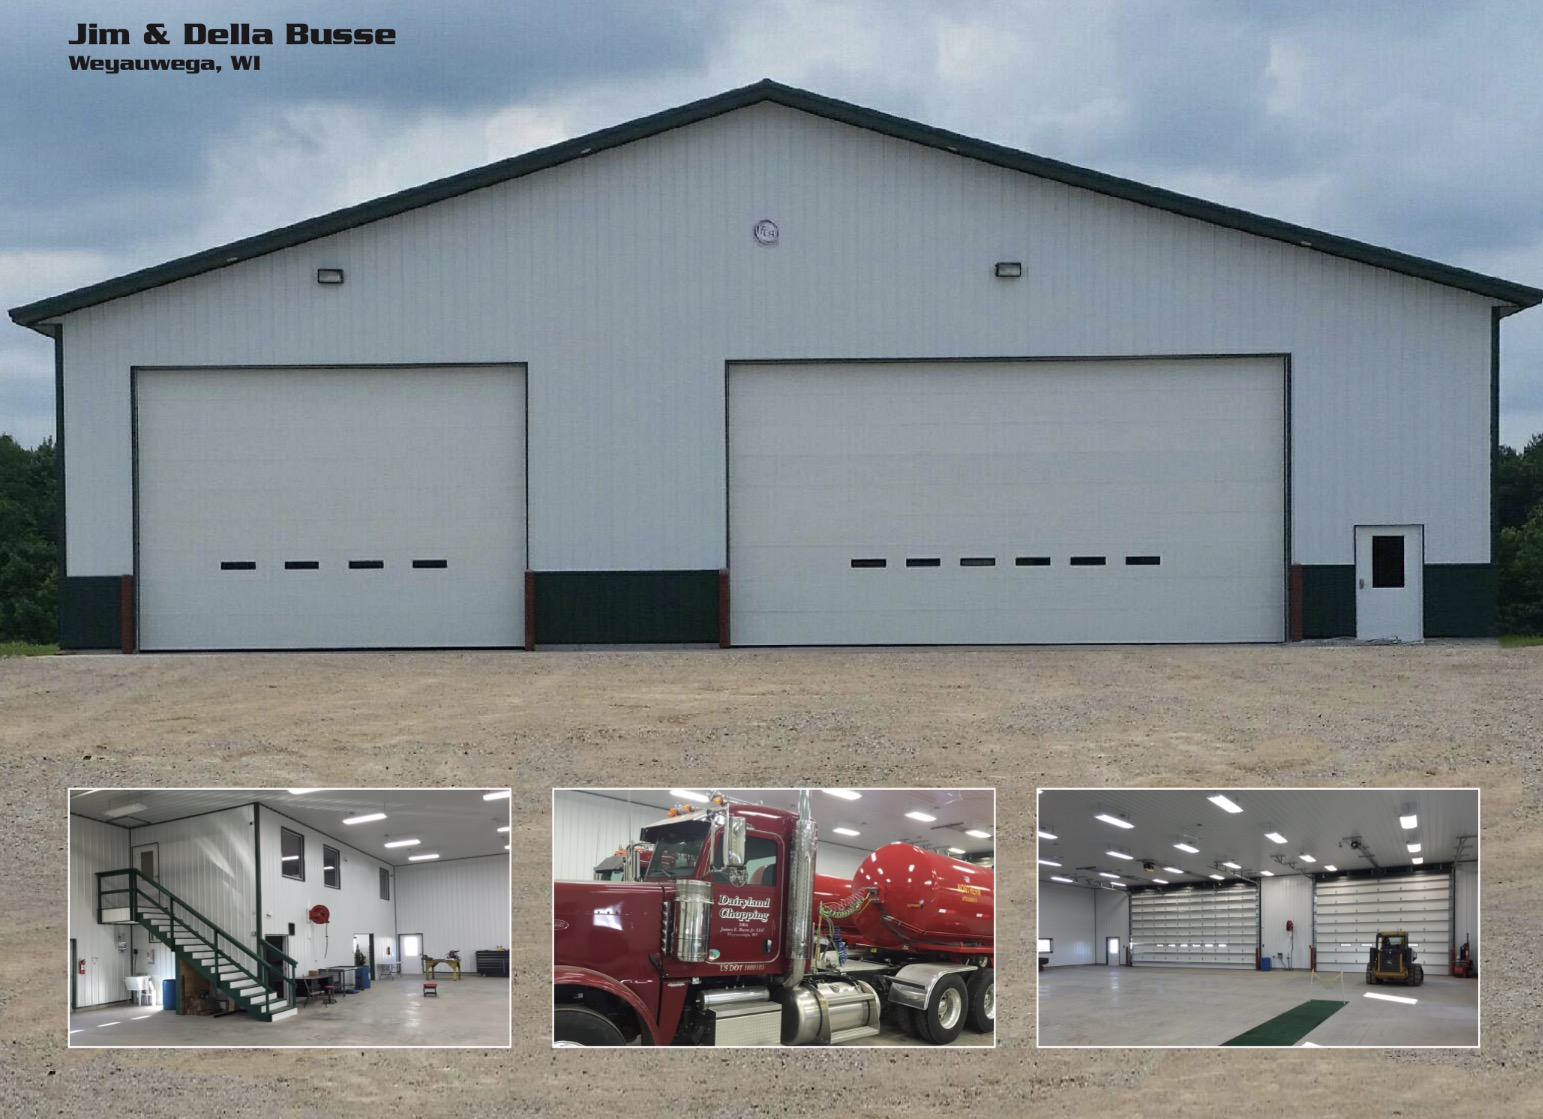 Shop/Shed Construction:  Dairyland Chopping-Jim & Della Busse, Weyauwega, WI